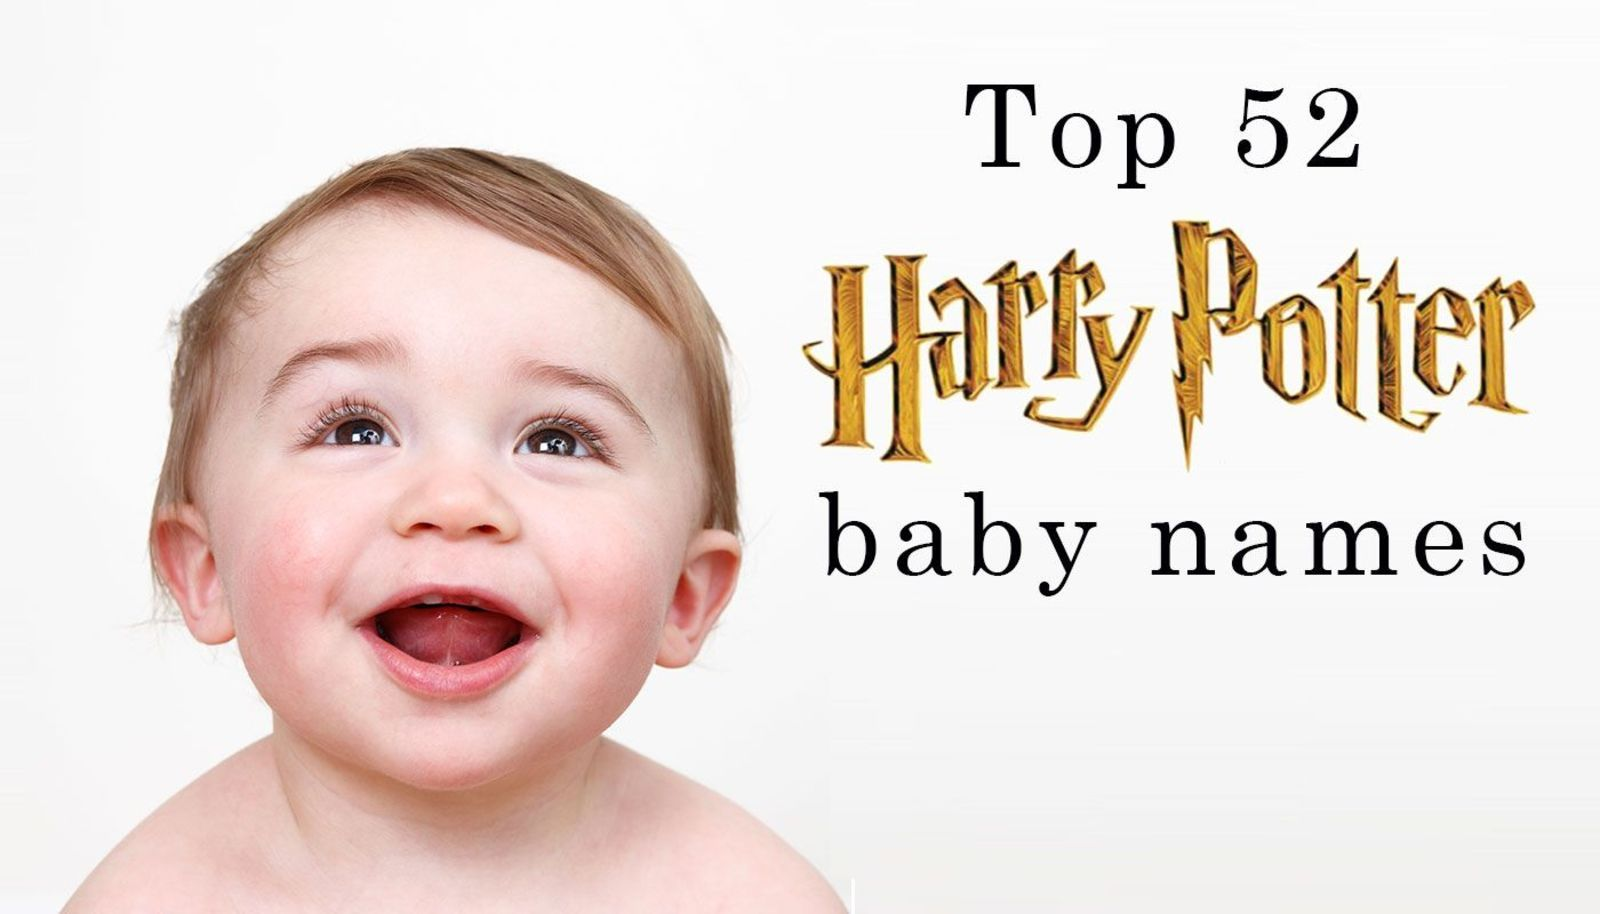 Baby name inspiration: Top 52 Harry Potter baby names - and